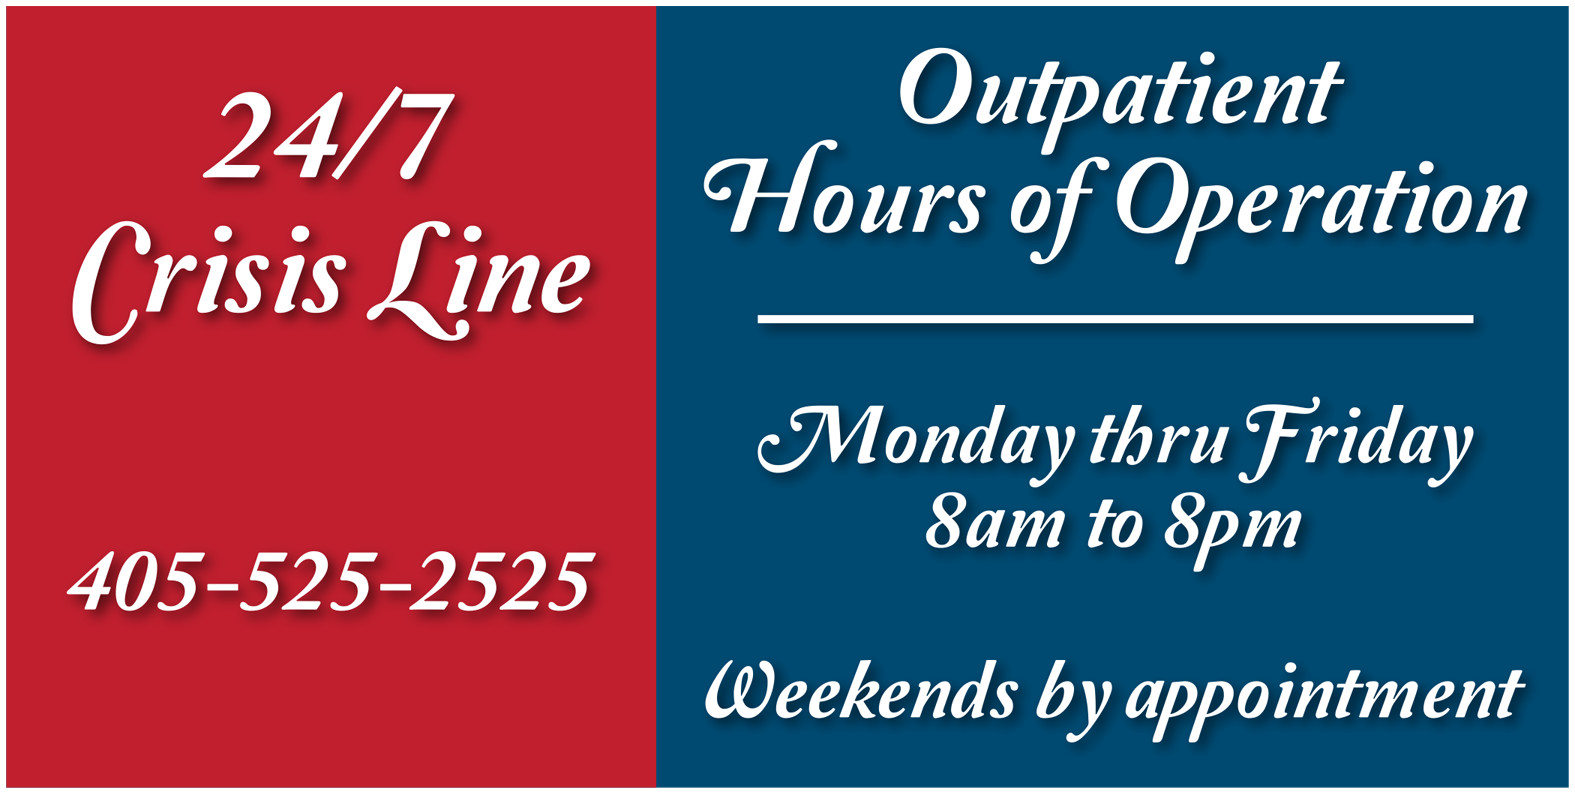 <br /> <h4><strong>Outpatient hours of operation include:</strong><br /> Monday – Friday 8am to 8pm<br /> Weekends By appointment<br /> 24/7 crisis number 405-525-2525</h4><br />